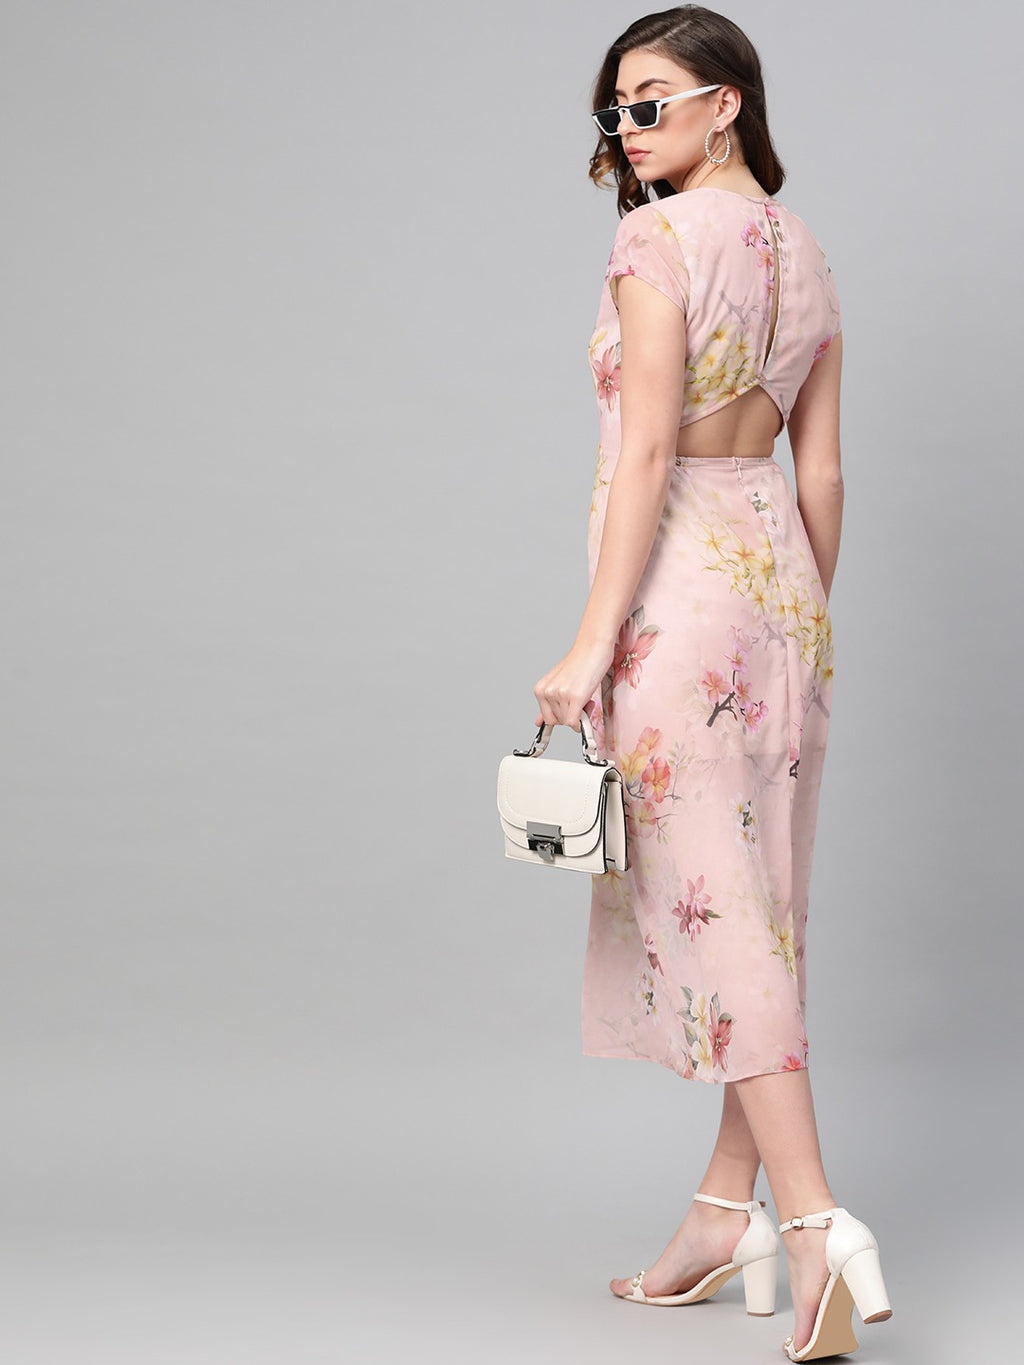 PEACH-COLOURED & PINK PRINTED A-LINE DRESS - chique boutique